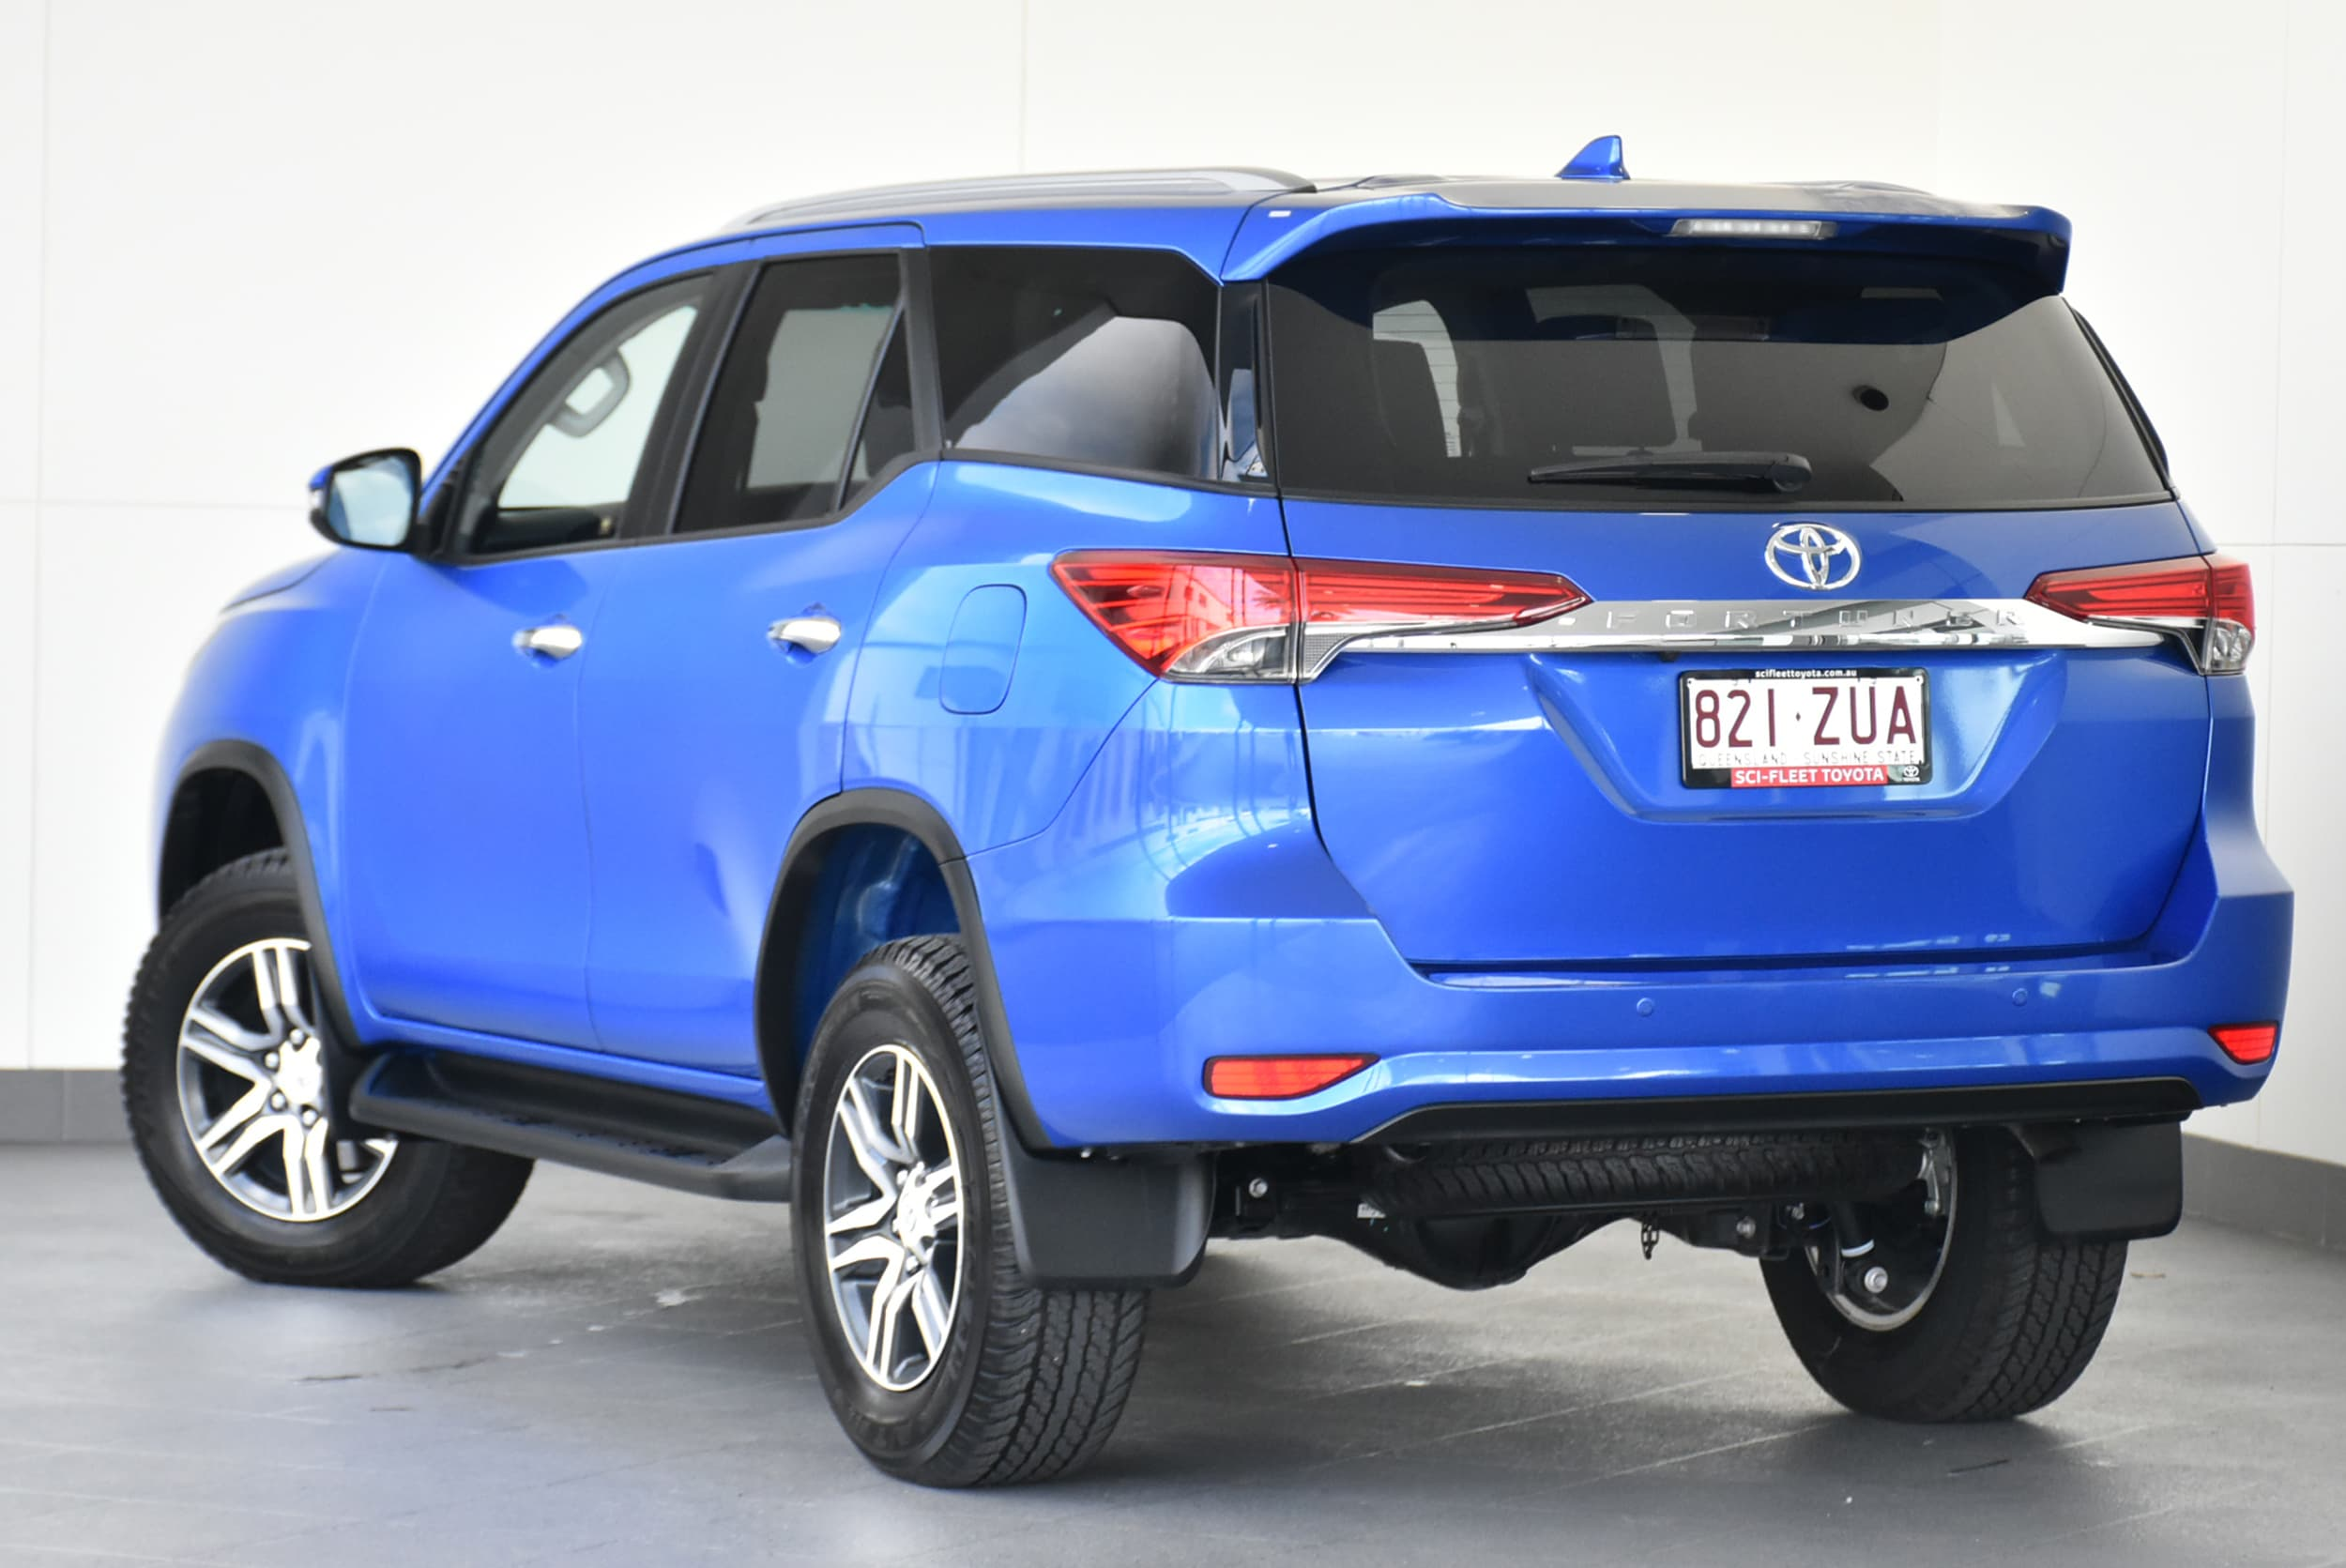 2019 Toyota Fortuner GXL Auto 4x4 - image 5